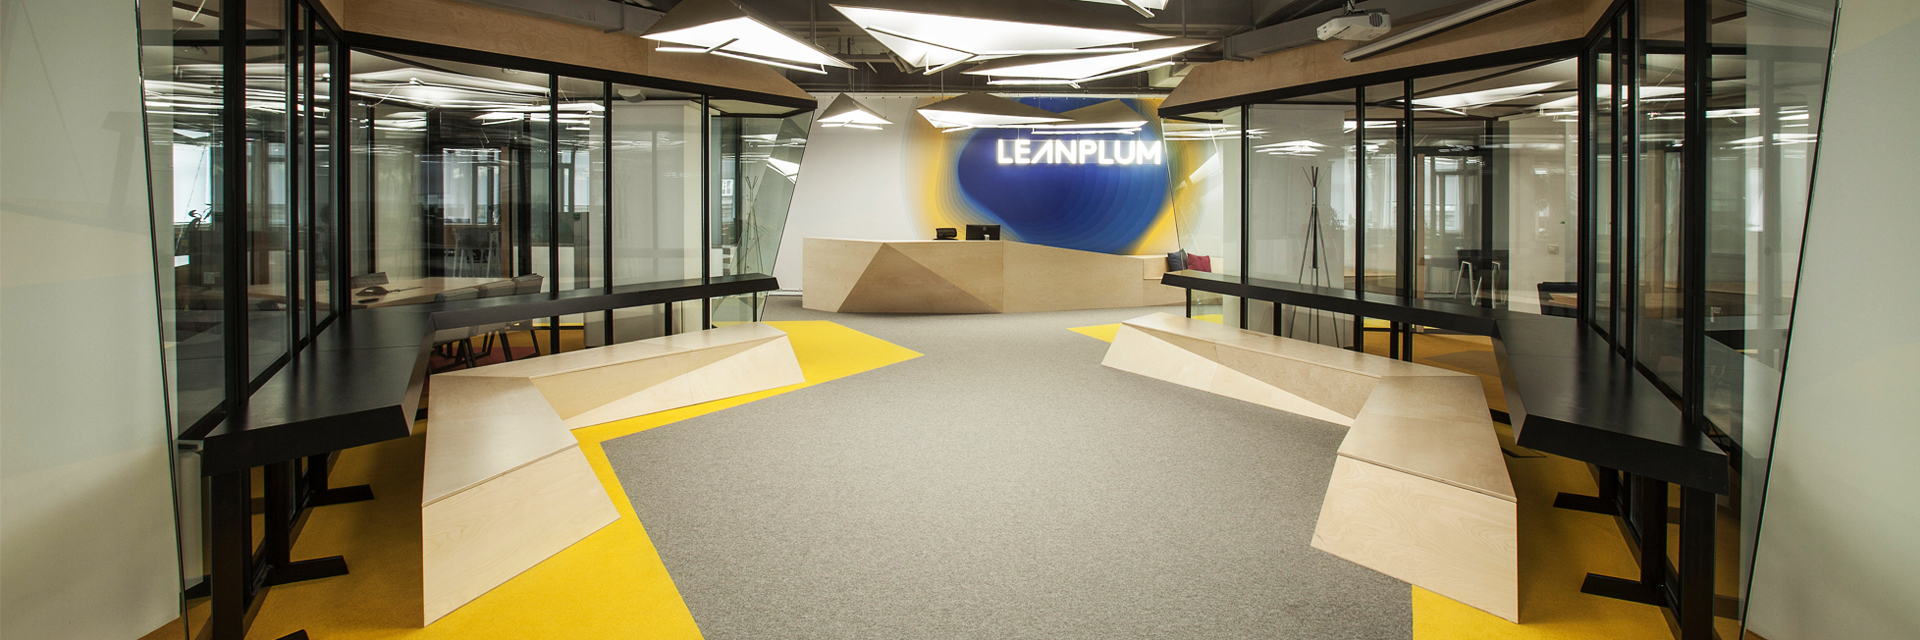 leanplum, front desk design, welcome area, office design